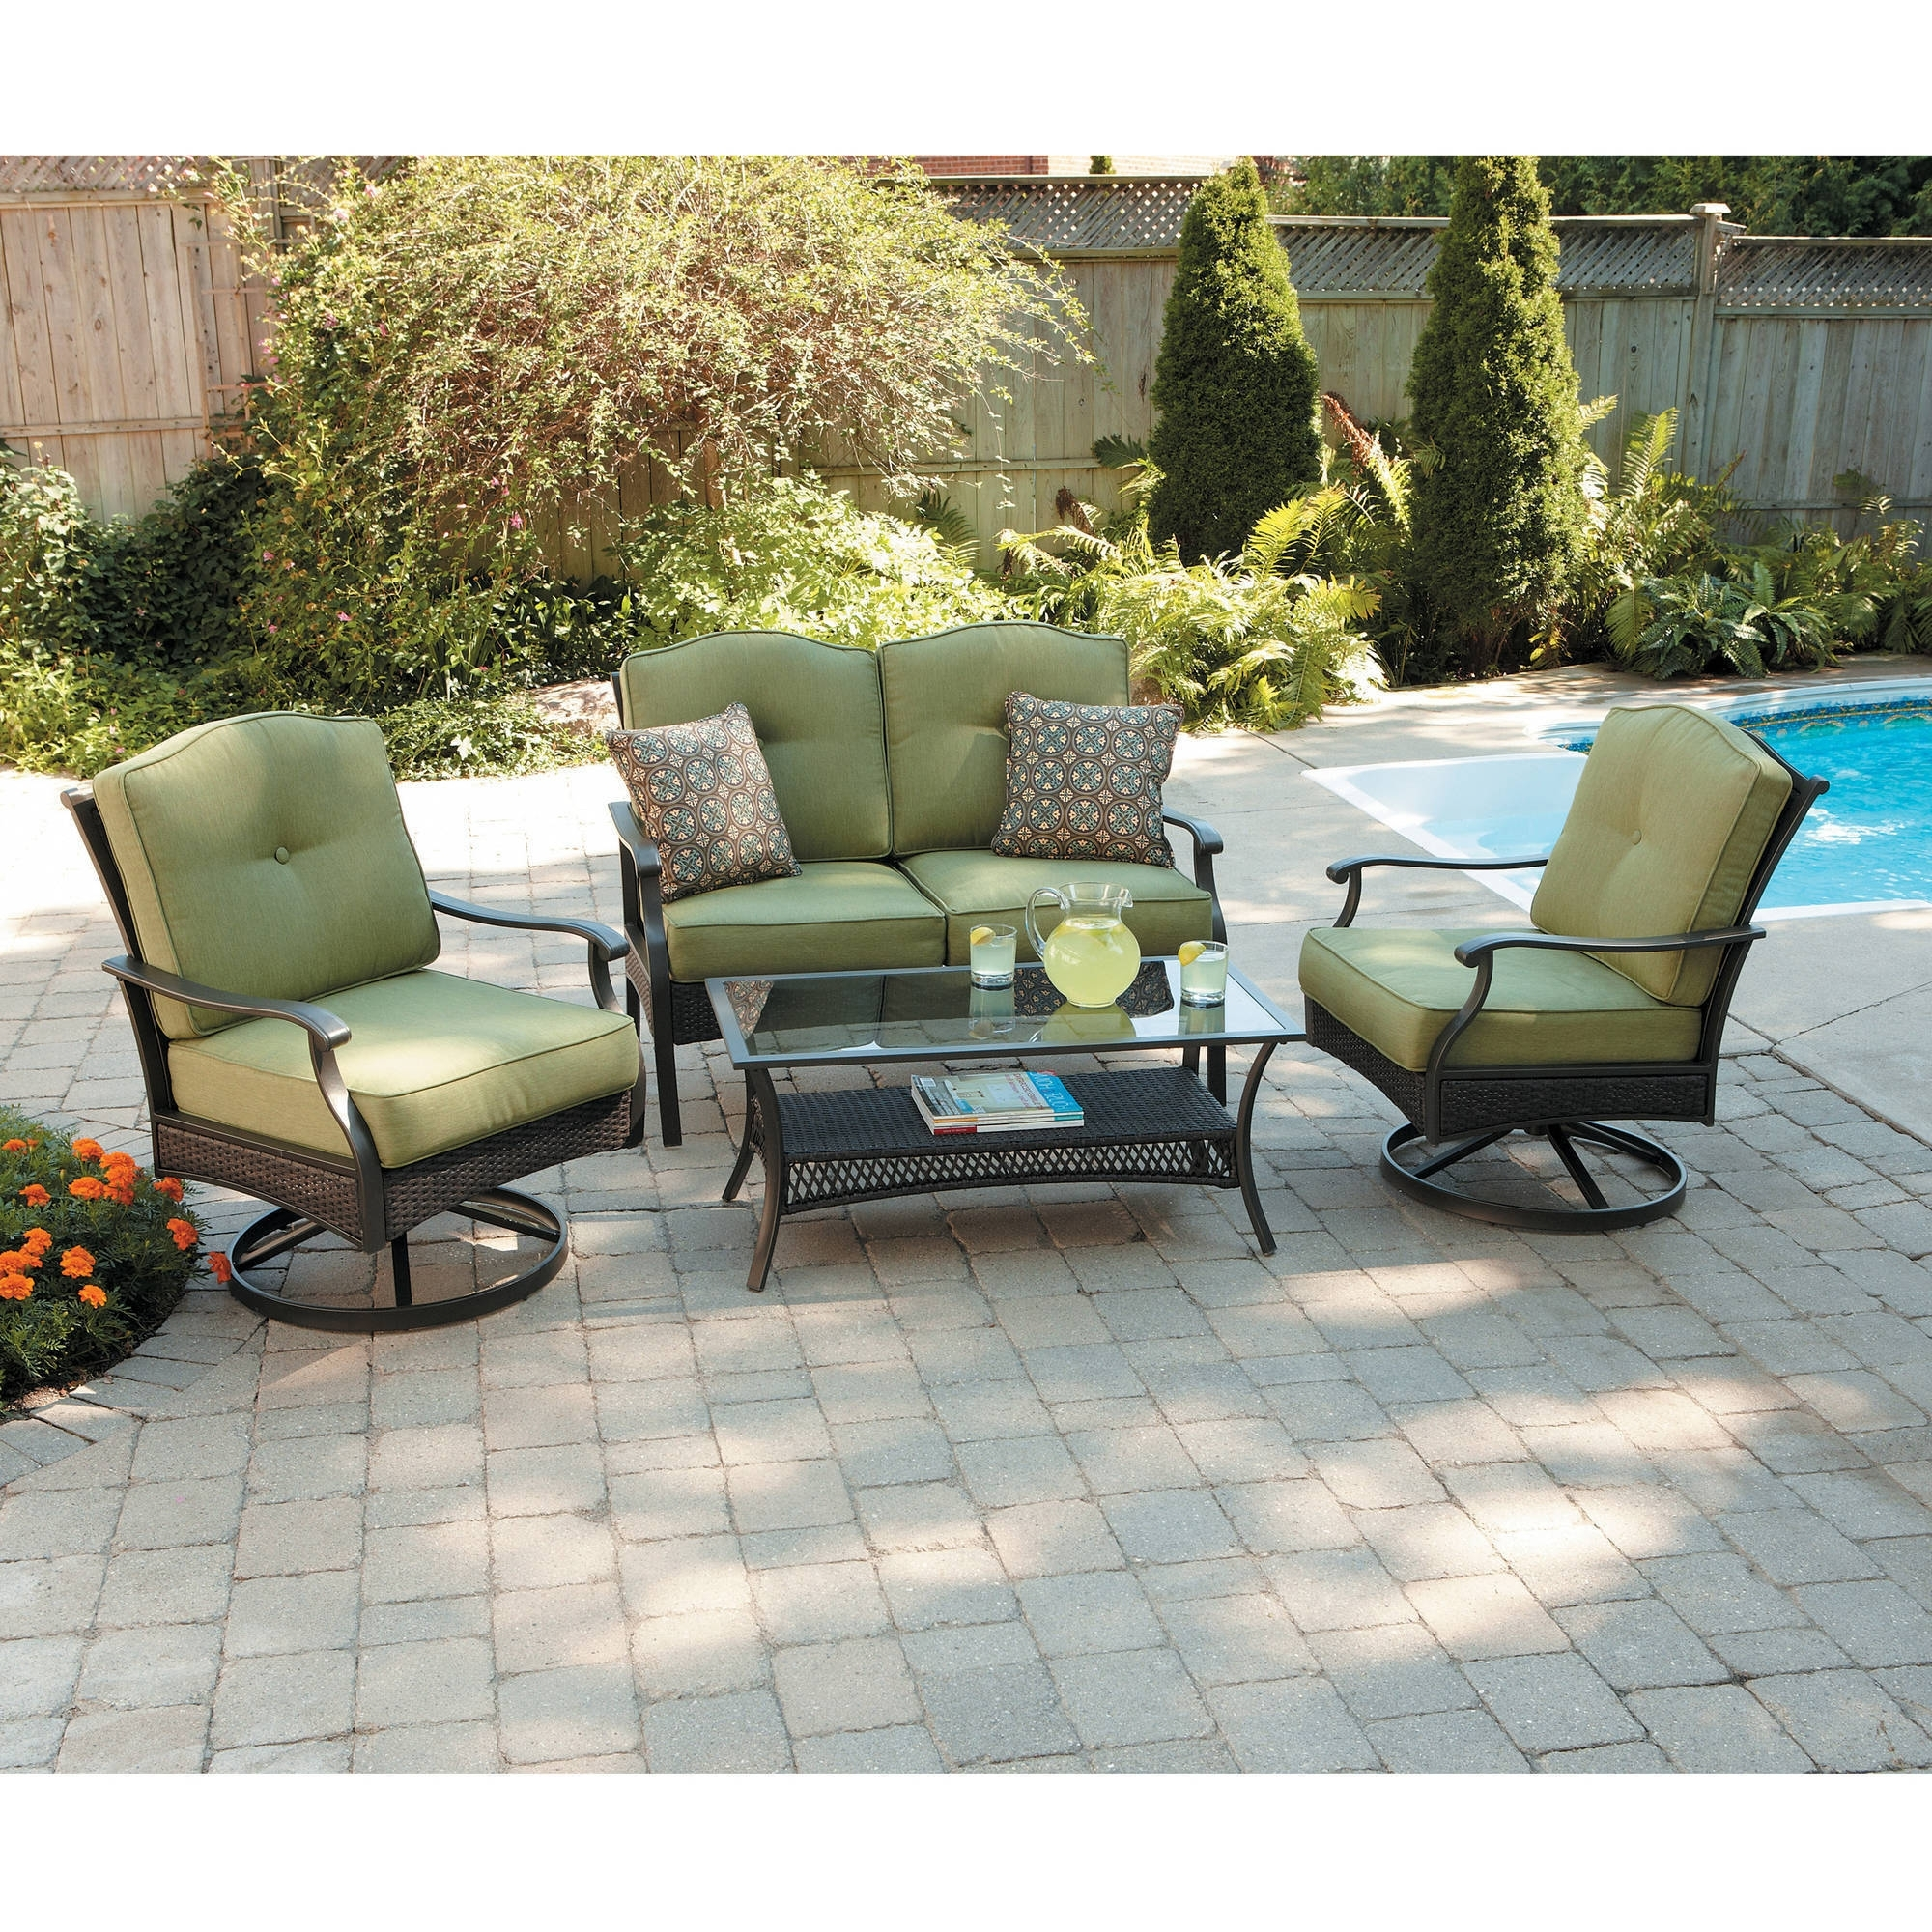 Better Homes And Gardens Providence 4 Piece Patio Conversation Set Within Fashionable Patio Conversation Set With Storage (View 20 of 20)